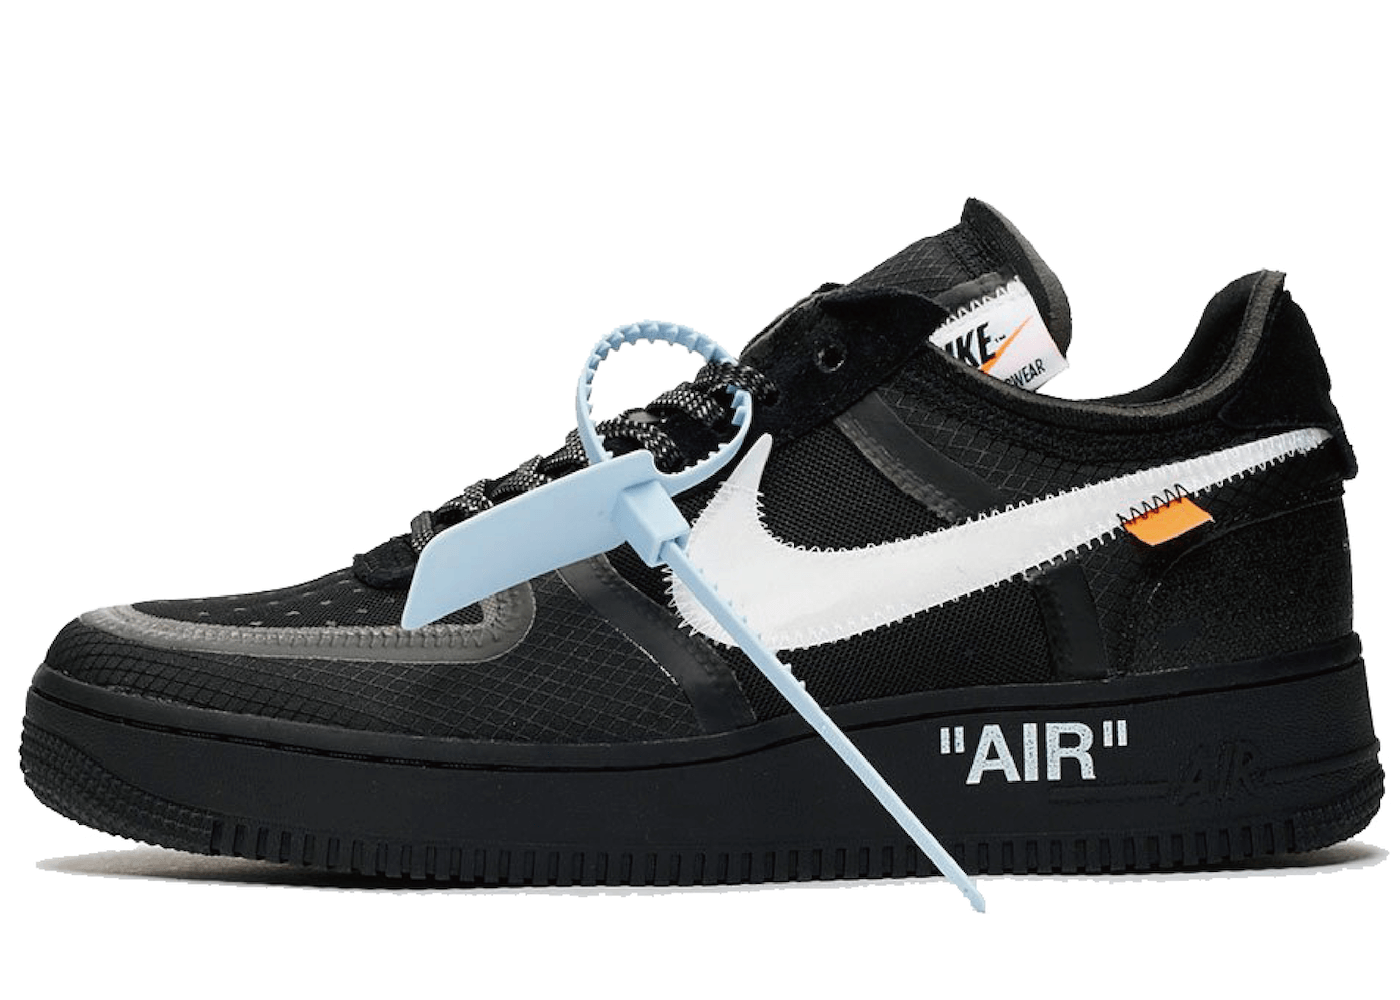 Nike Air Force 1 Low Off-White Black Whiteの写真